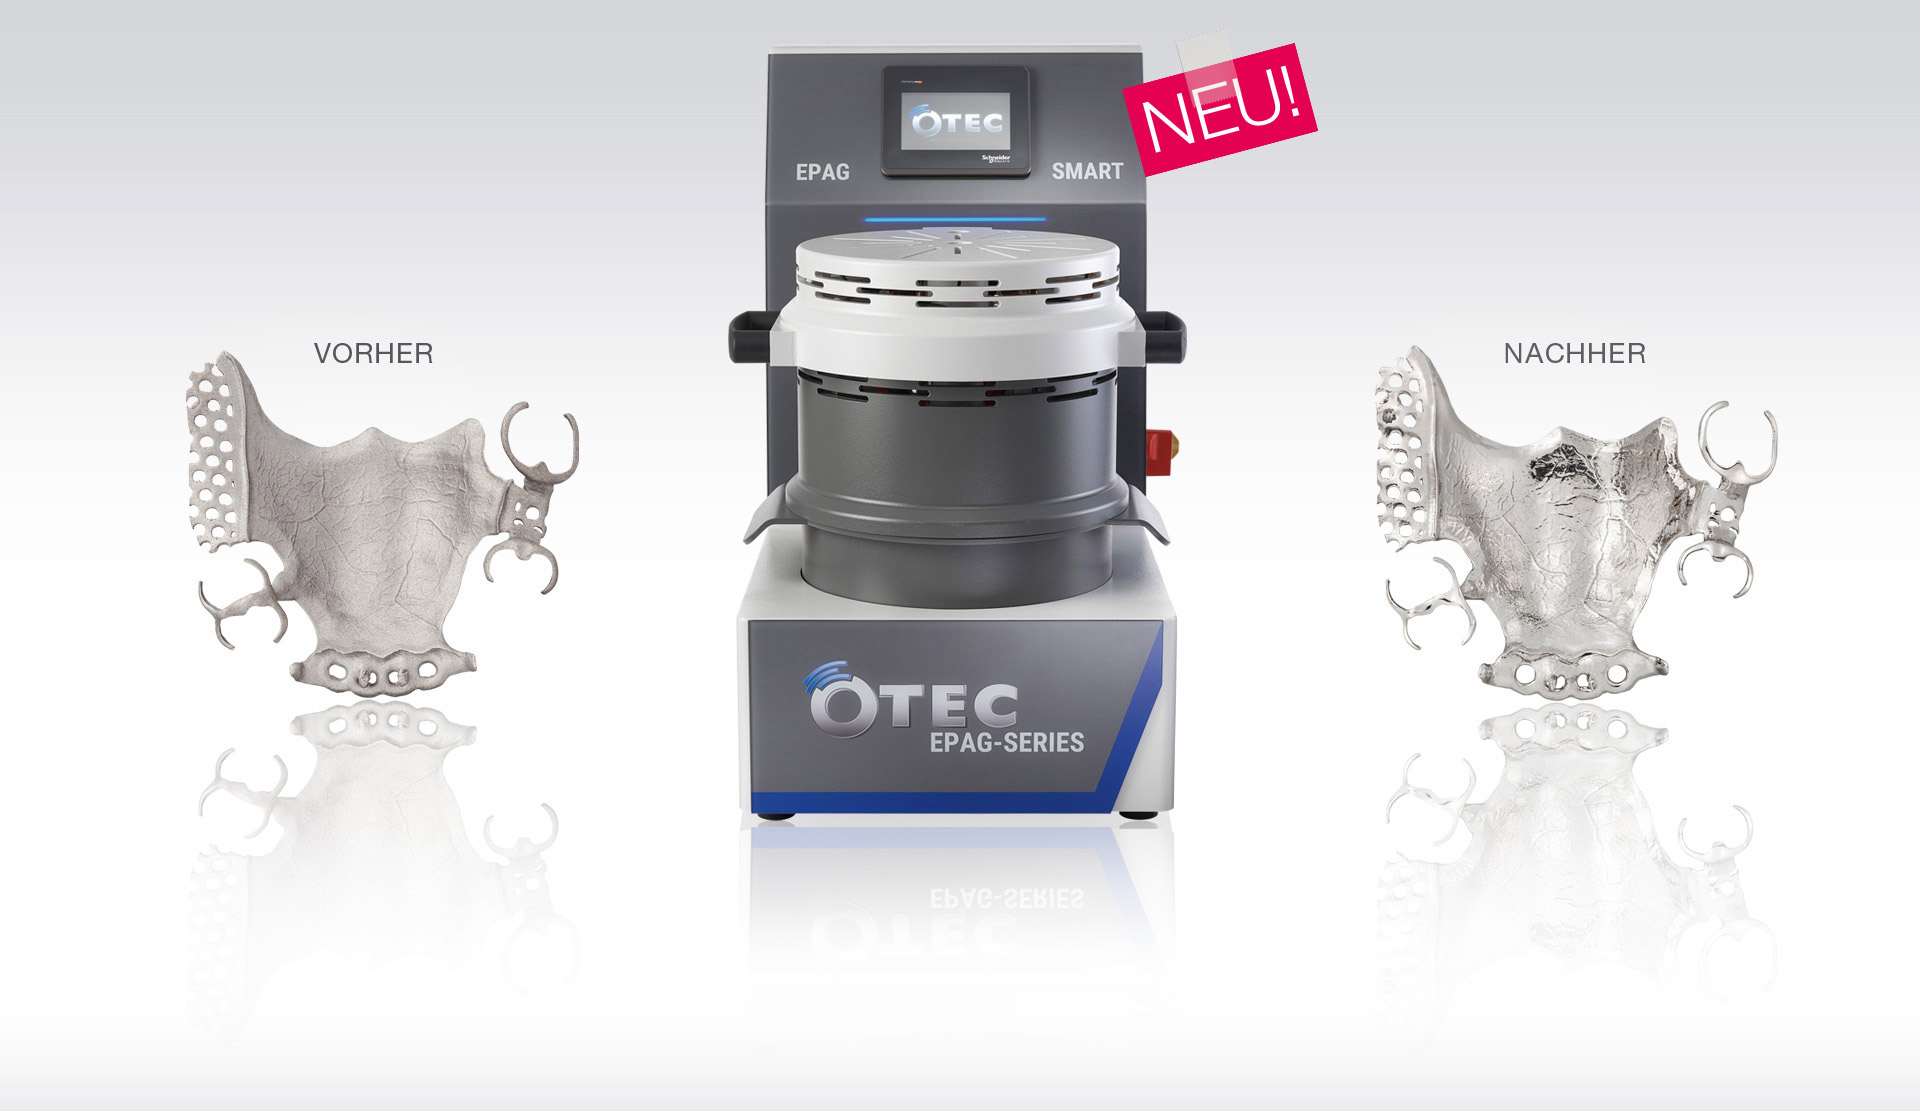 OTEC Overview